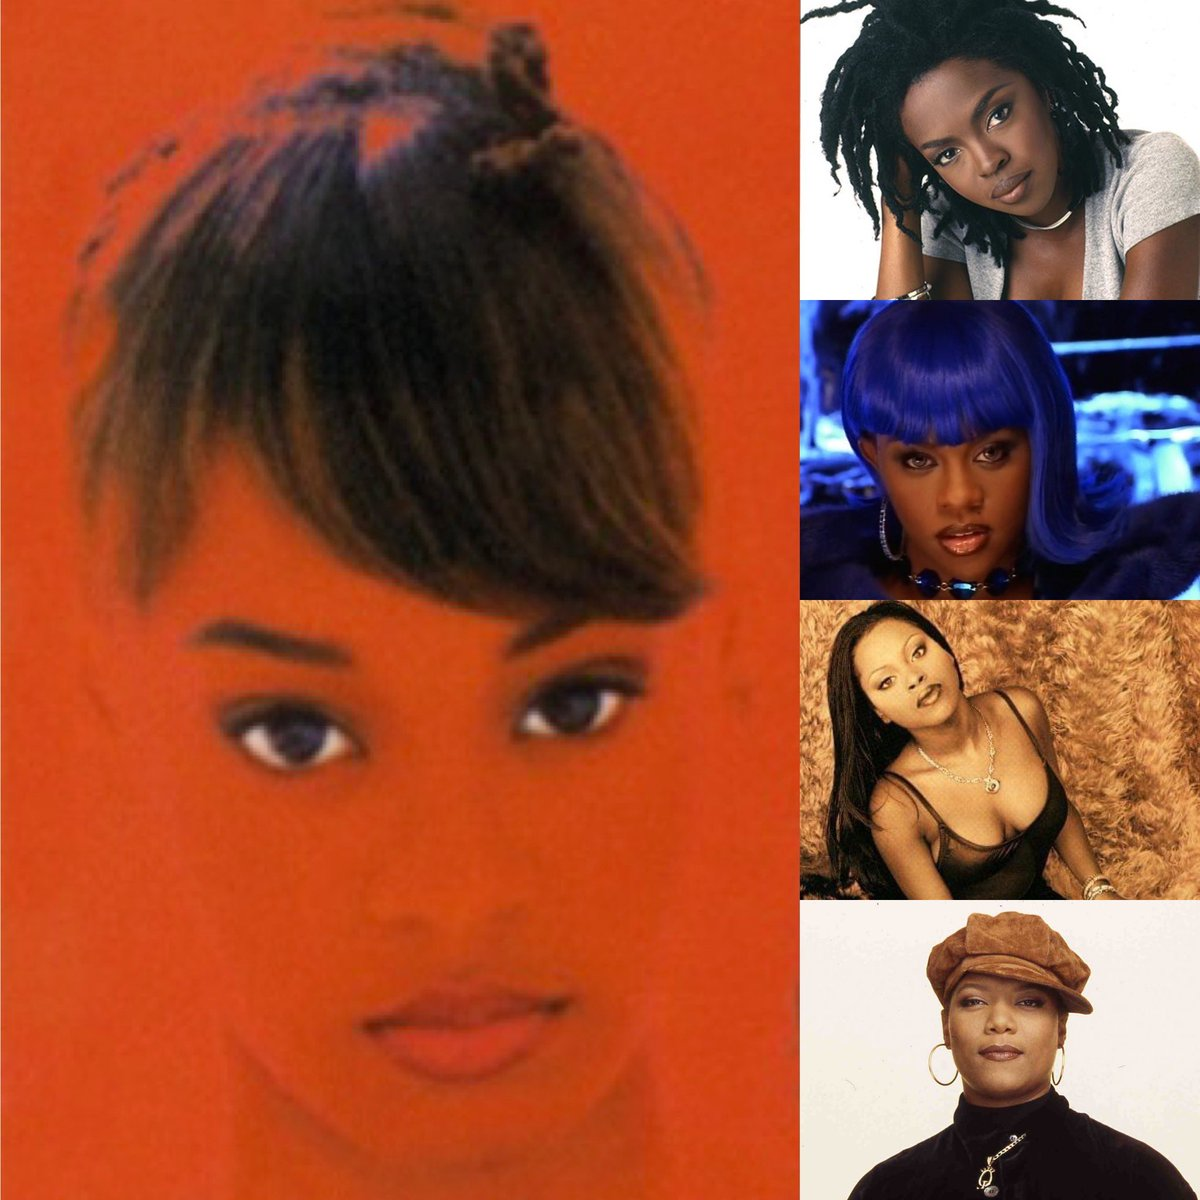 The Queens of HipHop never get the homage they deserve. These are my most influential. If you know, you know. #BlackGirlMagic #BlackHistoryMonth